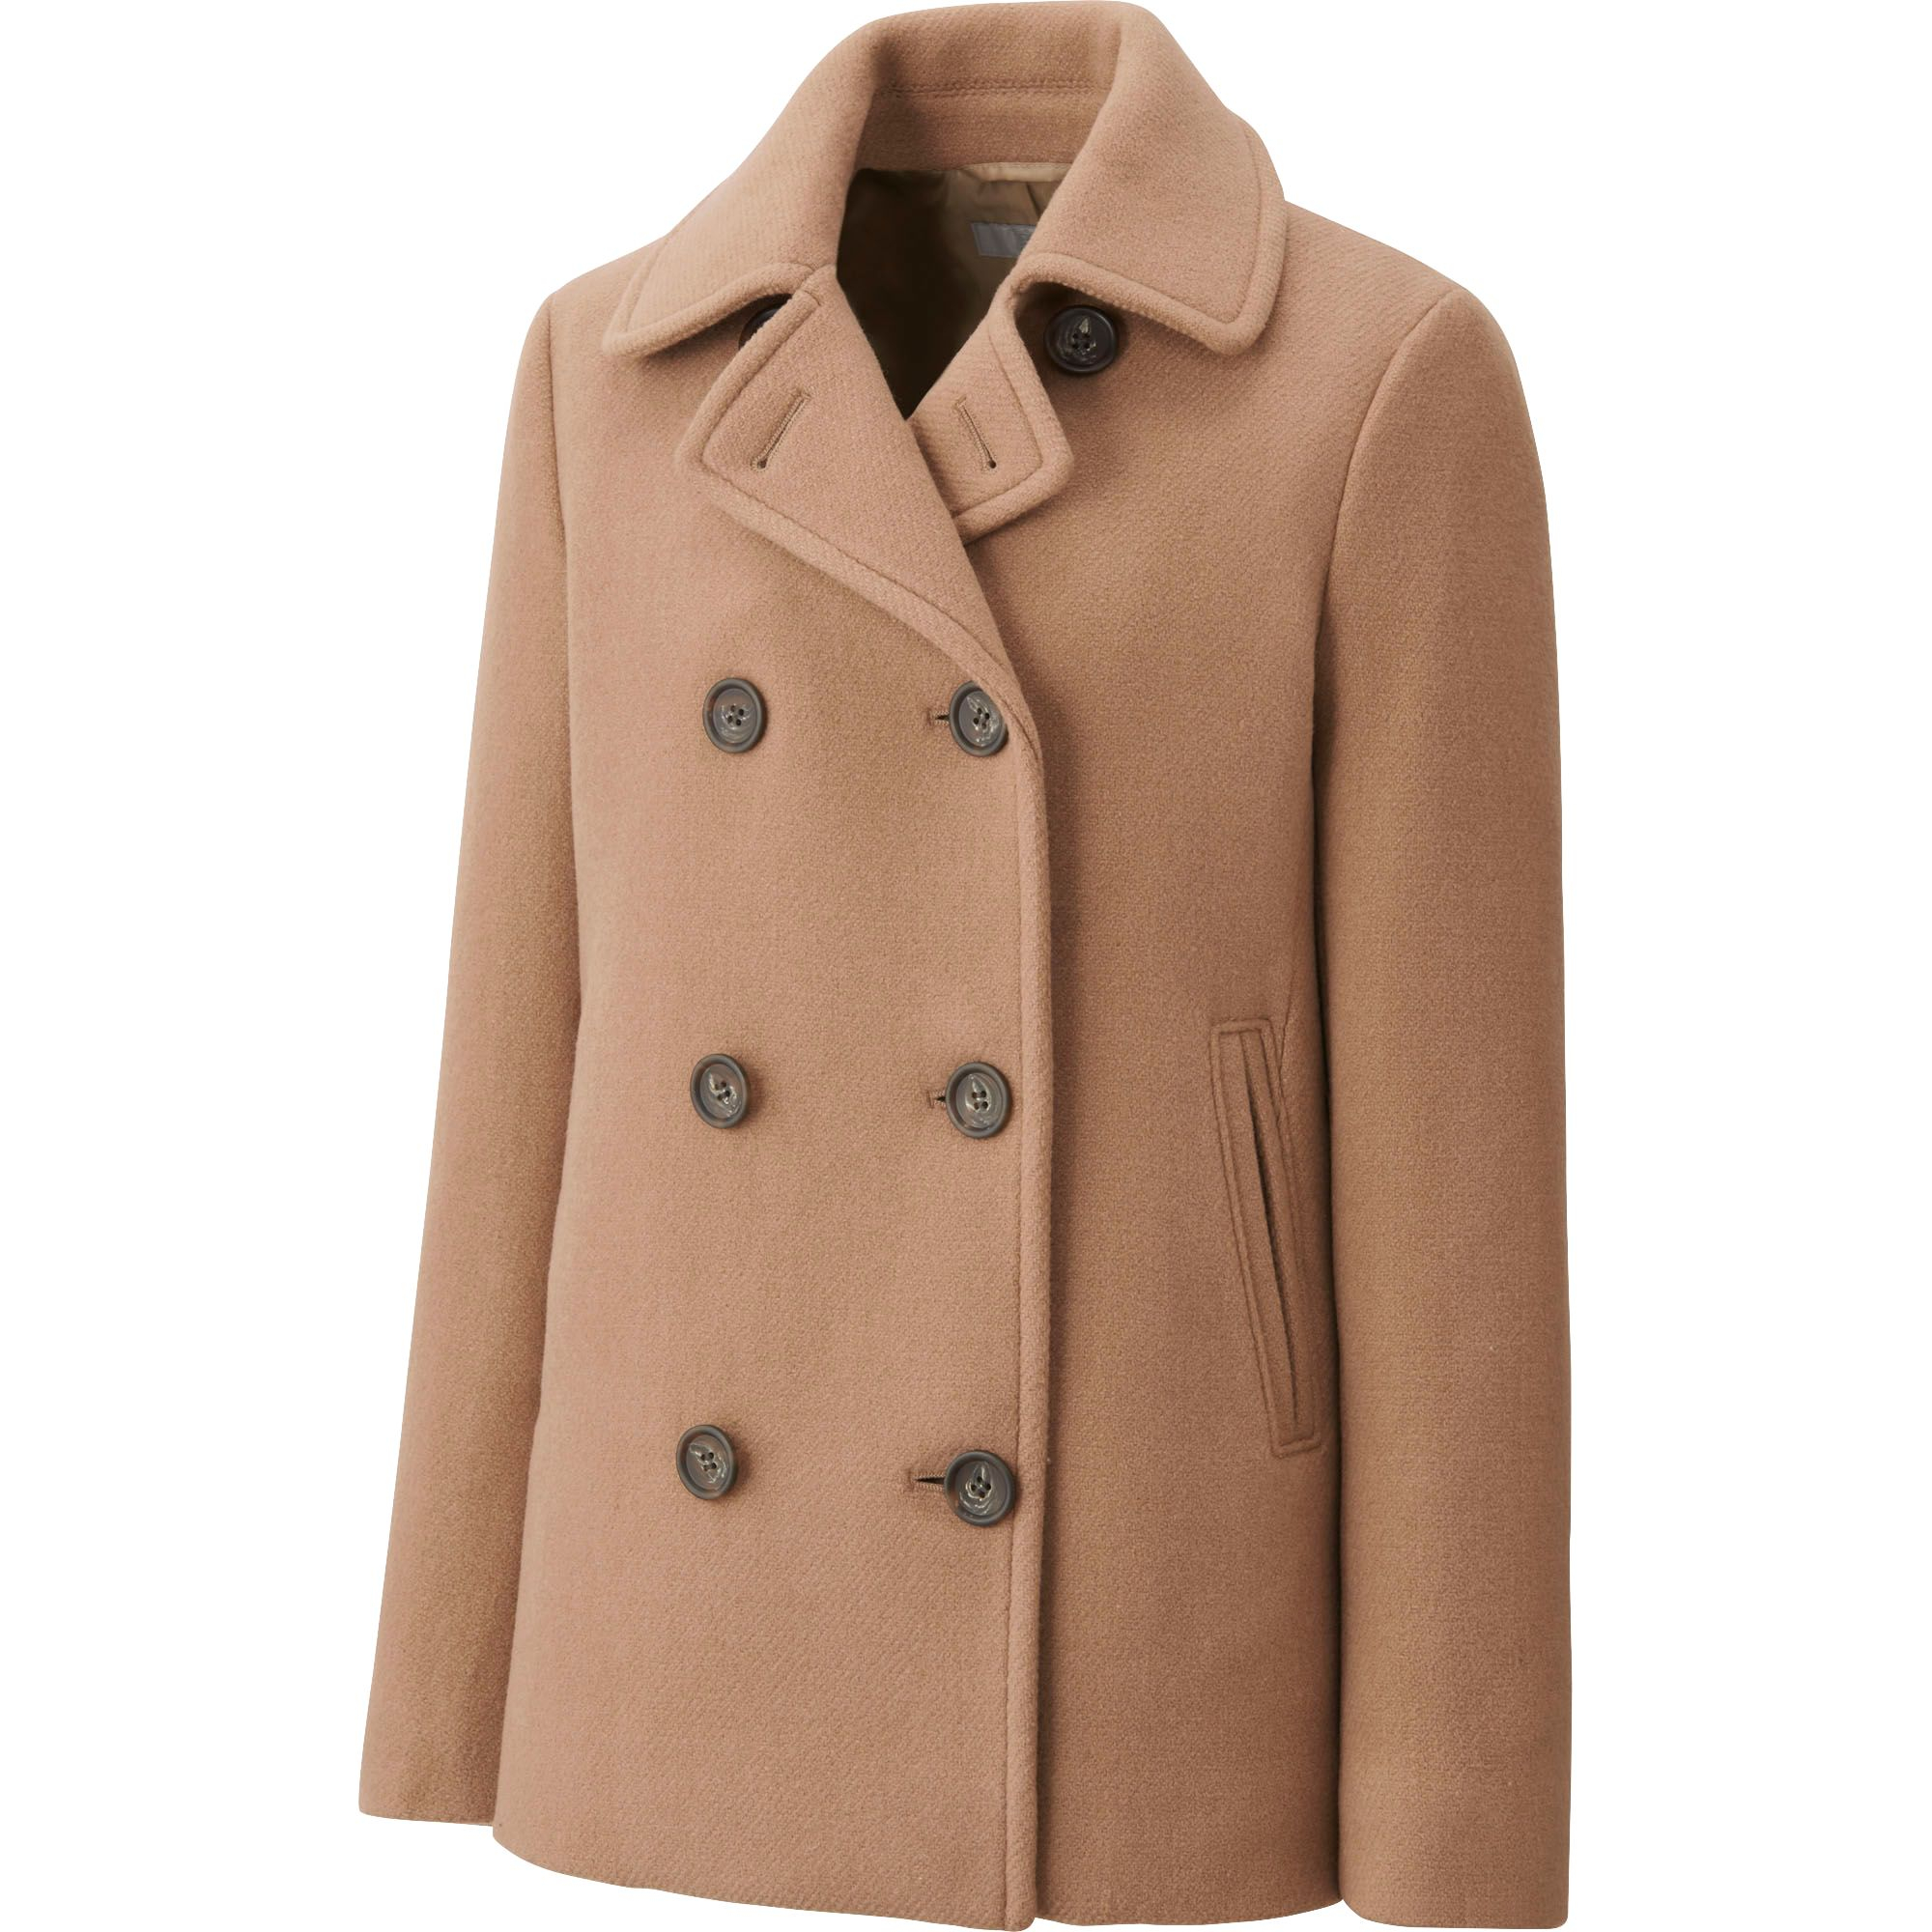 Bundle up and stay warm in a cute and trendy jacket or coat from eternal-sv.tk Free Shipping on orders over $50! Jackets & Coats for Women -Trendy Outerwear for Women at Lulus x.